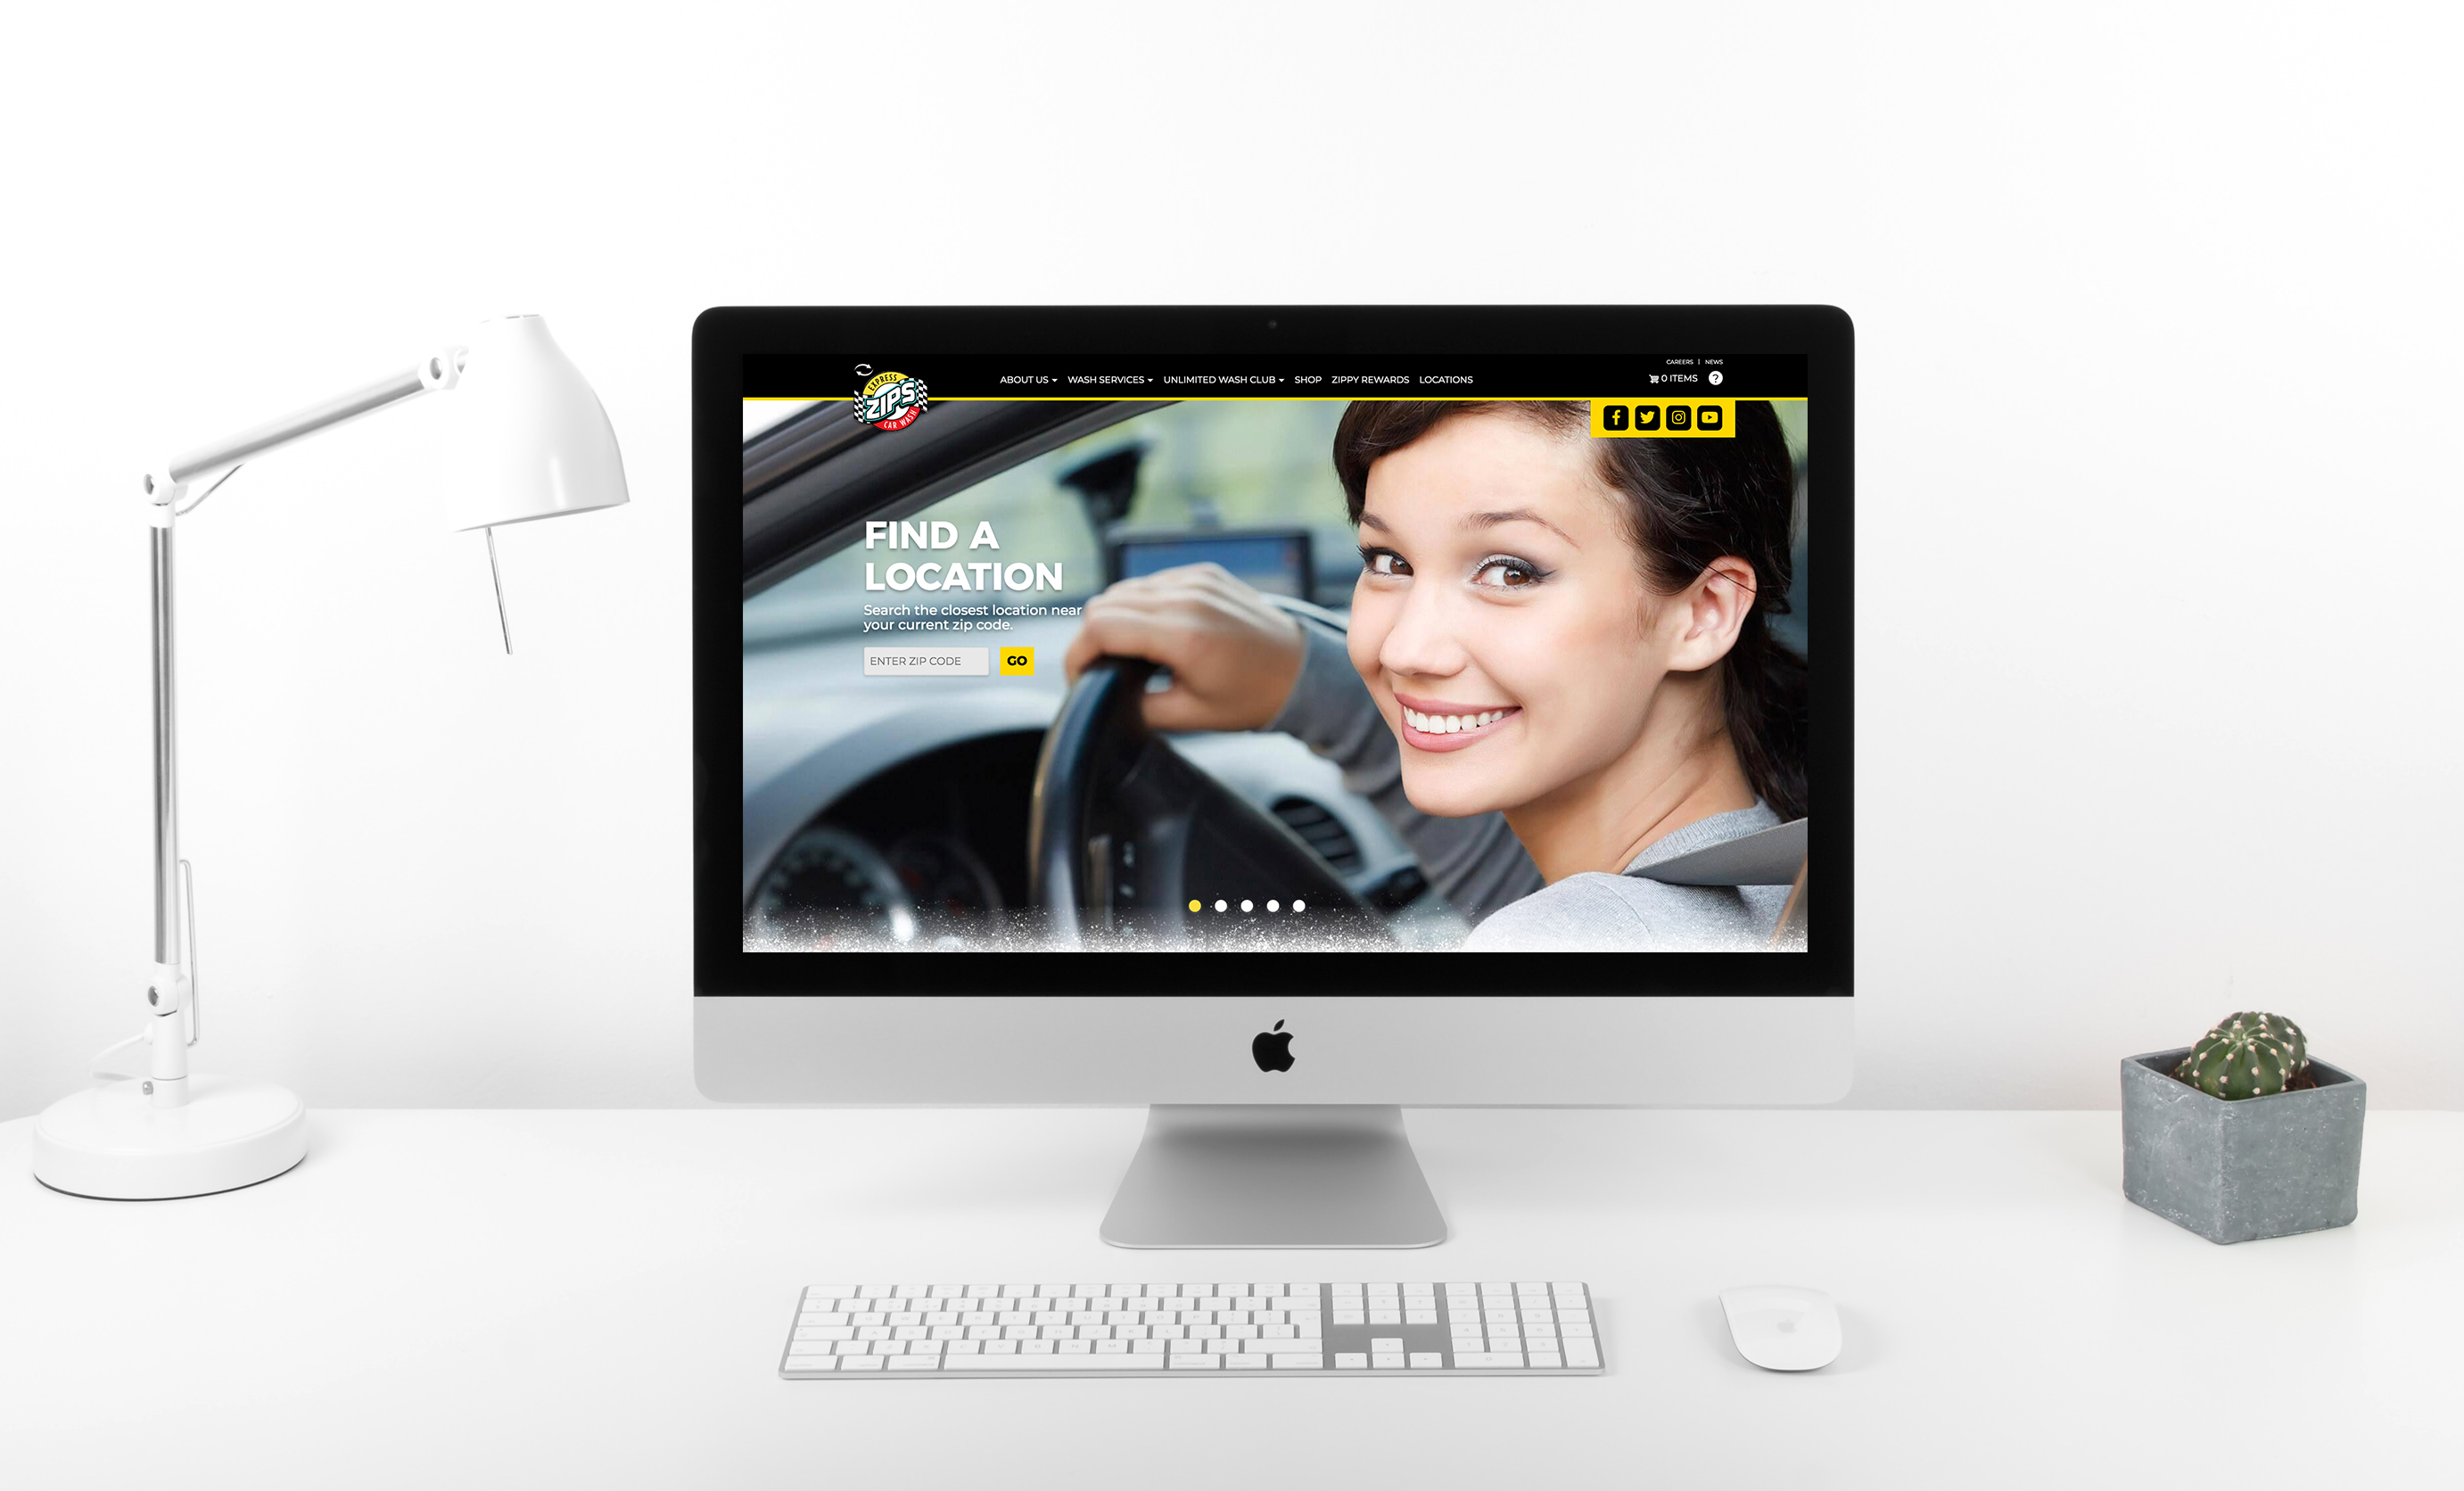 Zips Car Wash Homepage Mockup on iMac